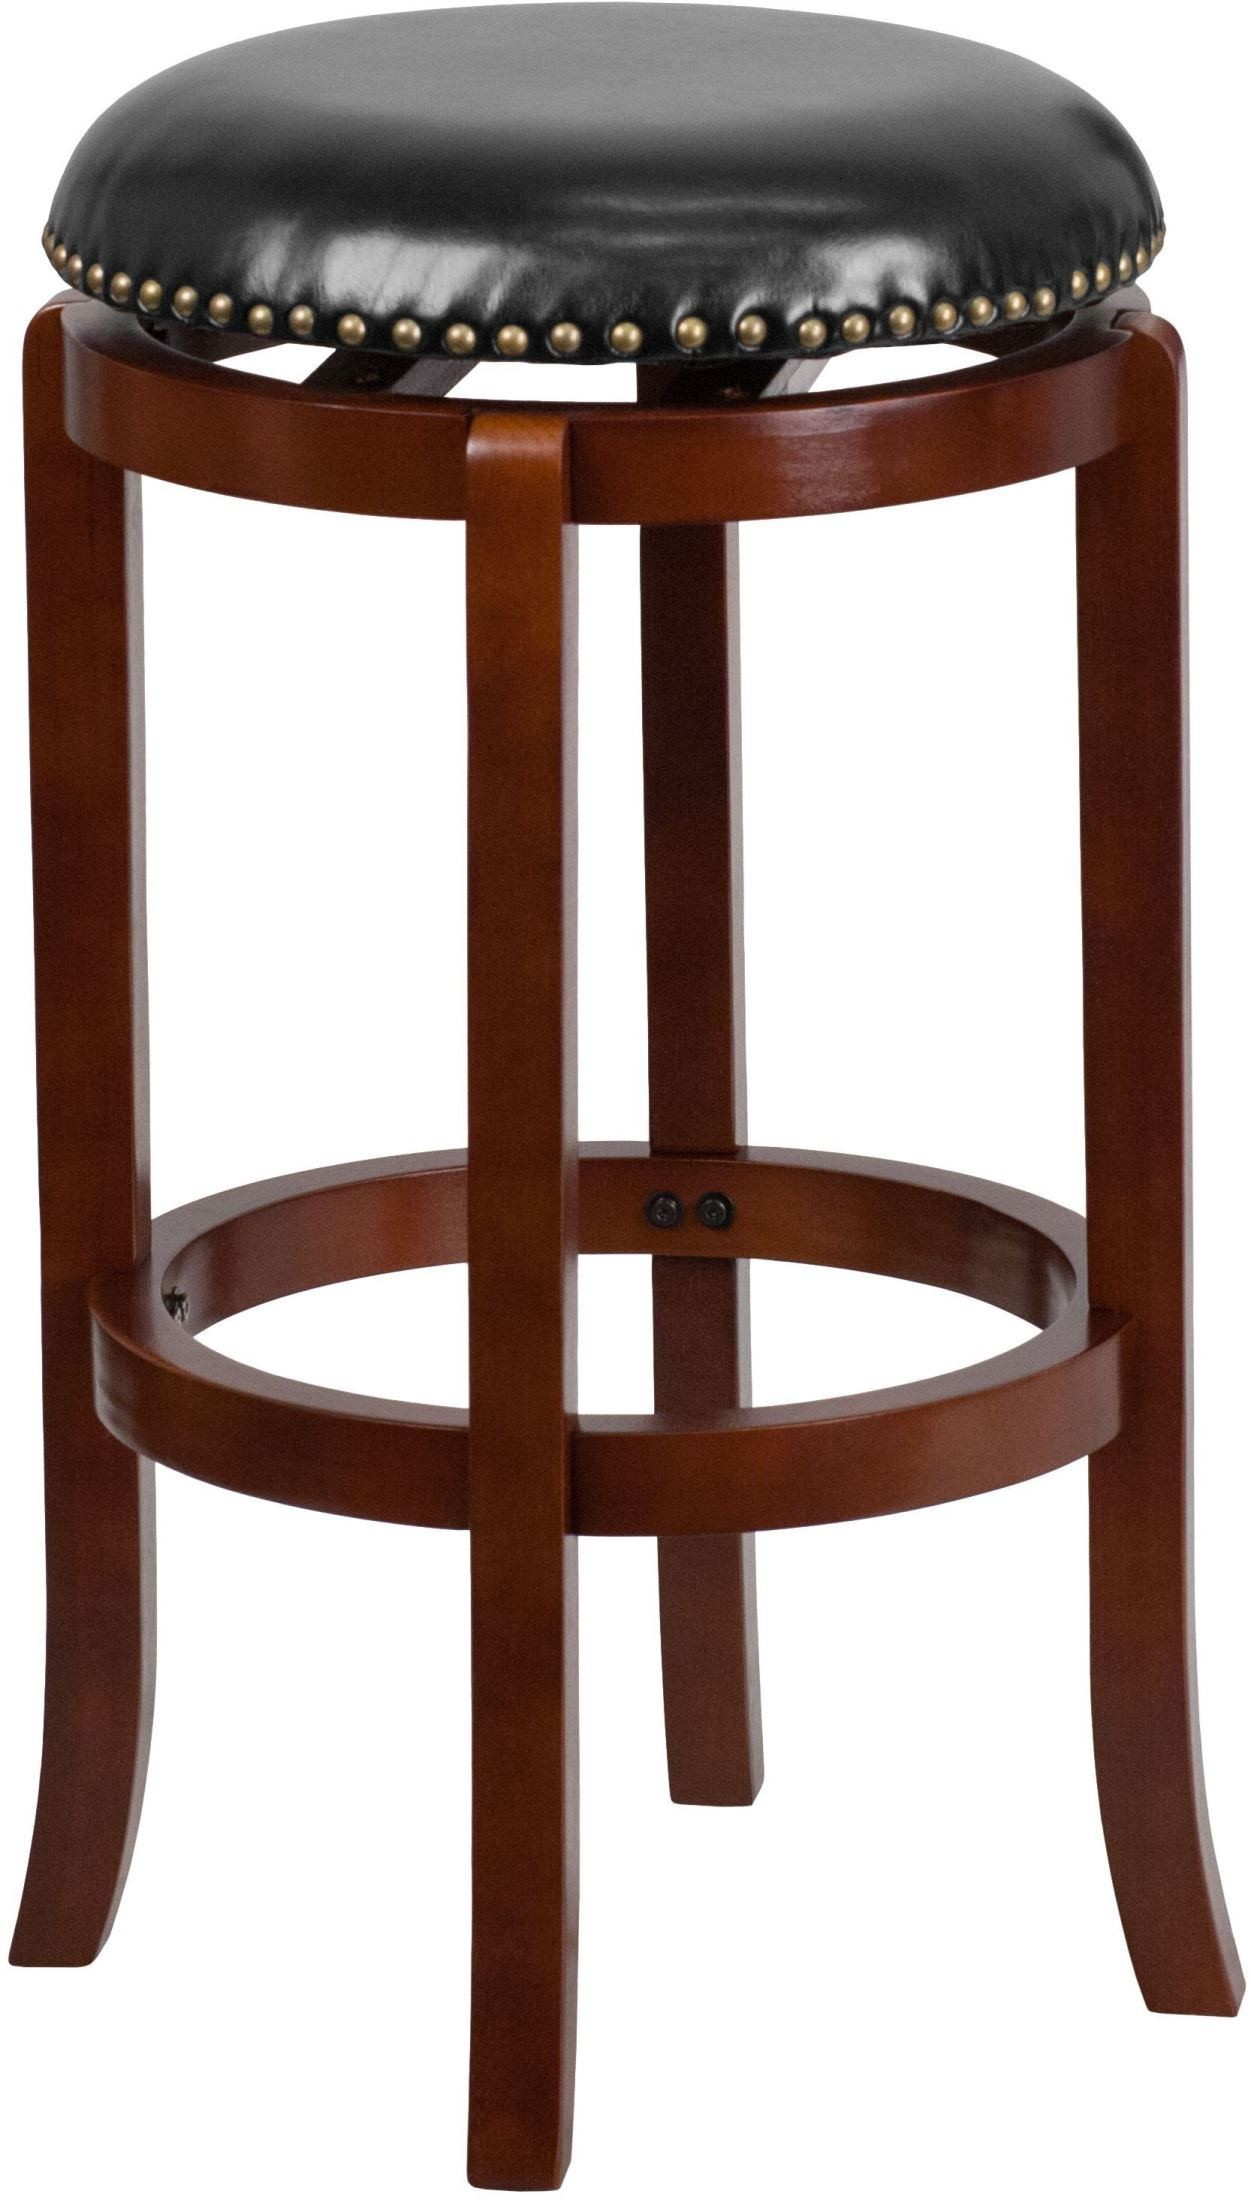 29inch black upholstery swivel backless light cherry wood bar stool from renegade coleman. Black Bedroom Furniture Sets. Home Design Ideas